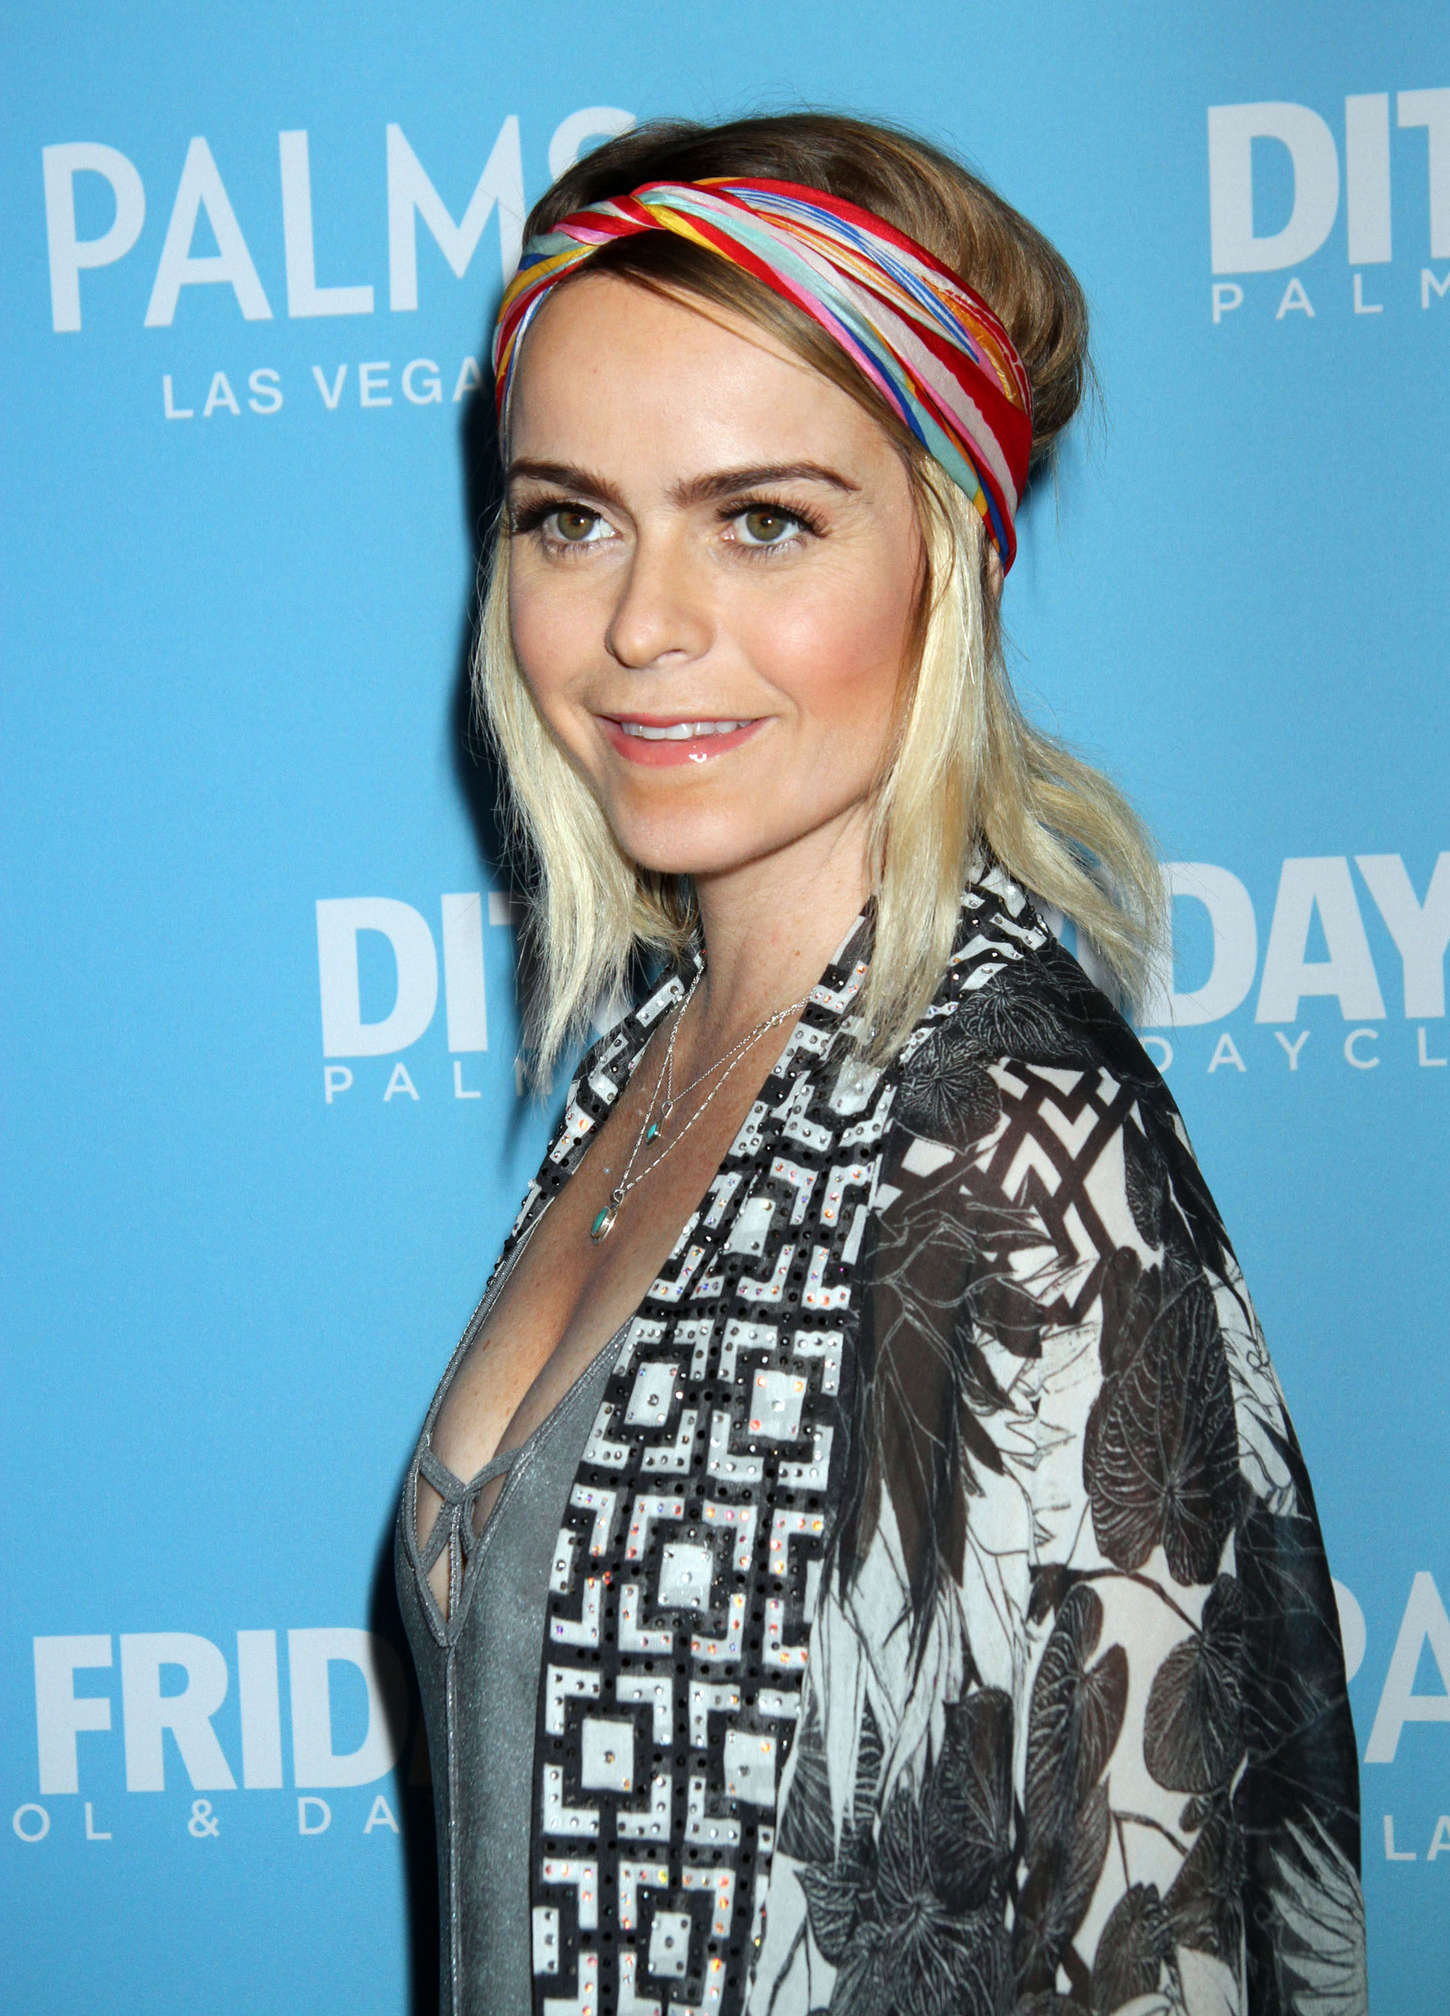 Taryn Manning Ditch Fridays at Palms Pool and Dayclub in Las Vegas